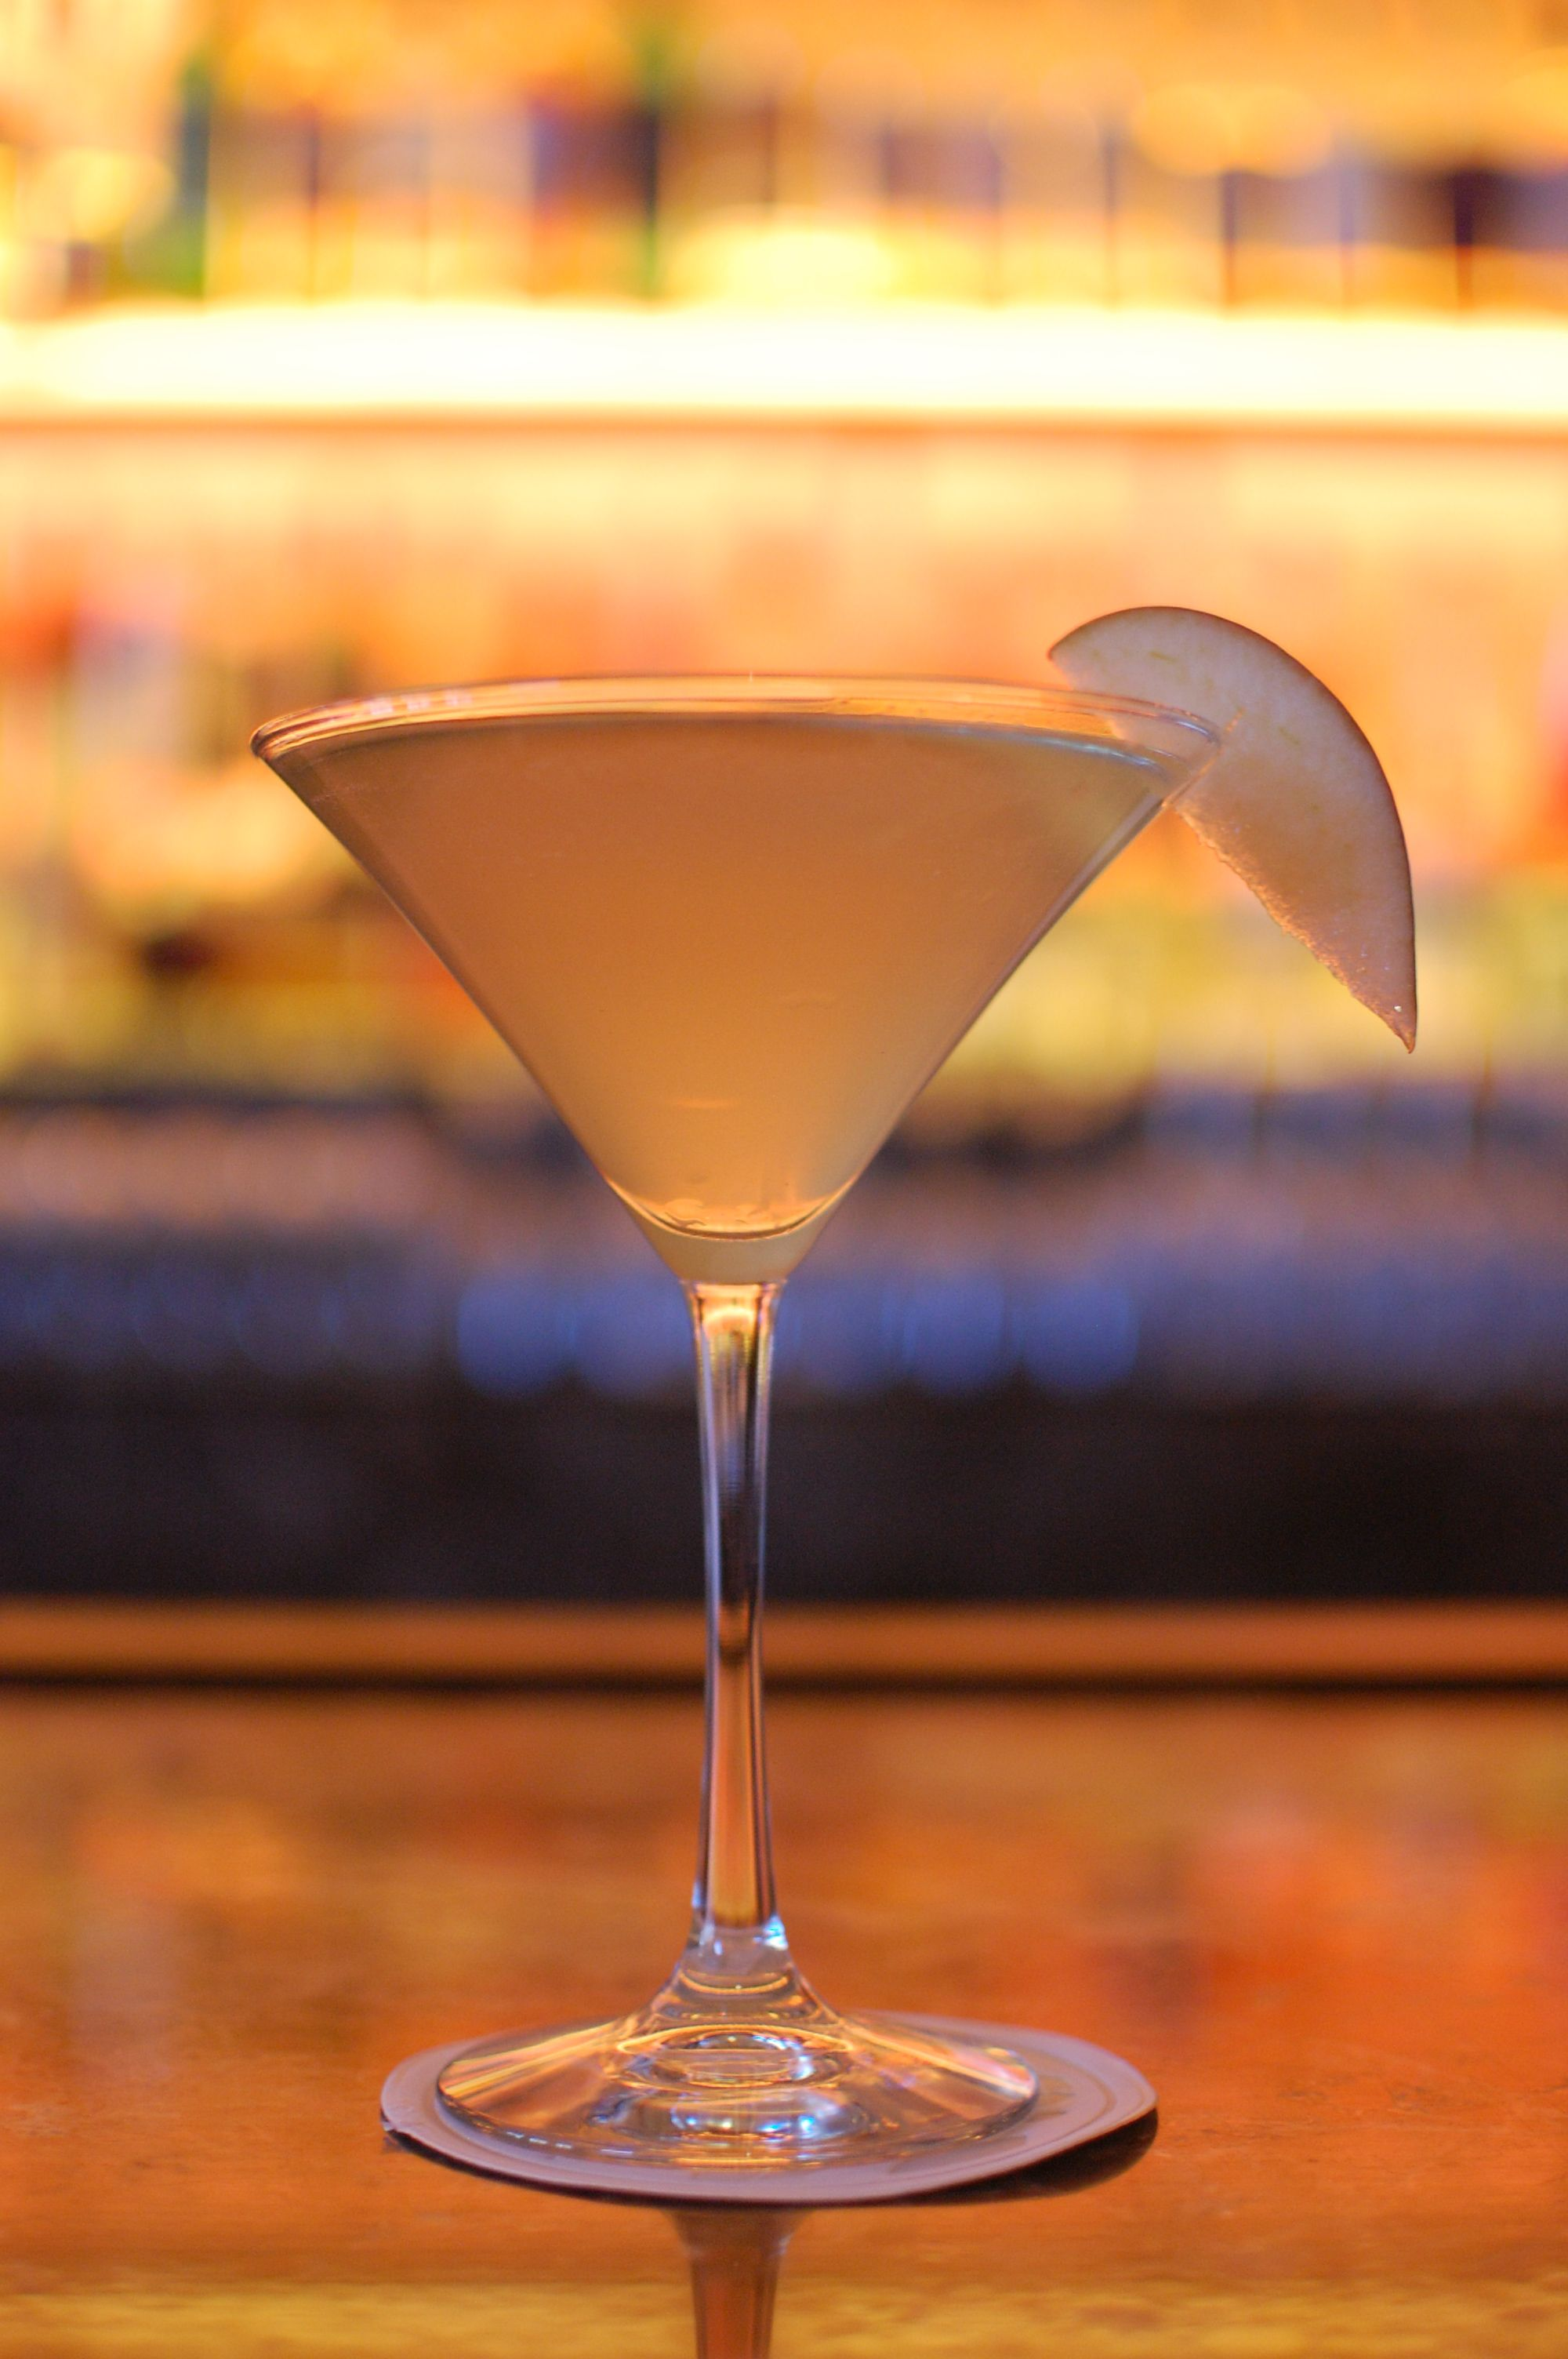 """Meet TY Bar's newest menu addition, the """"Midtown East"""" Martini.   Ingredients: 2 ounces elit™ by Stolichnaya® vodka  .5 ounce honey syrup  .5 ounce cinnamon syrup  1 ounce apple juice Top with Prosecco Garnish with a slice of red apple"""